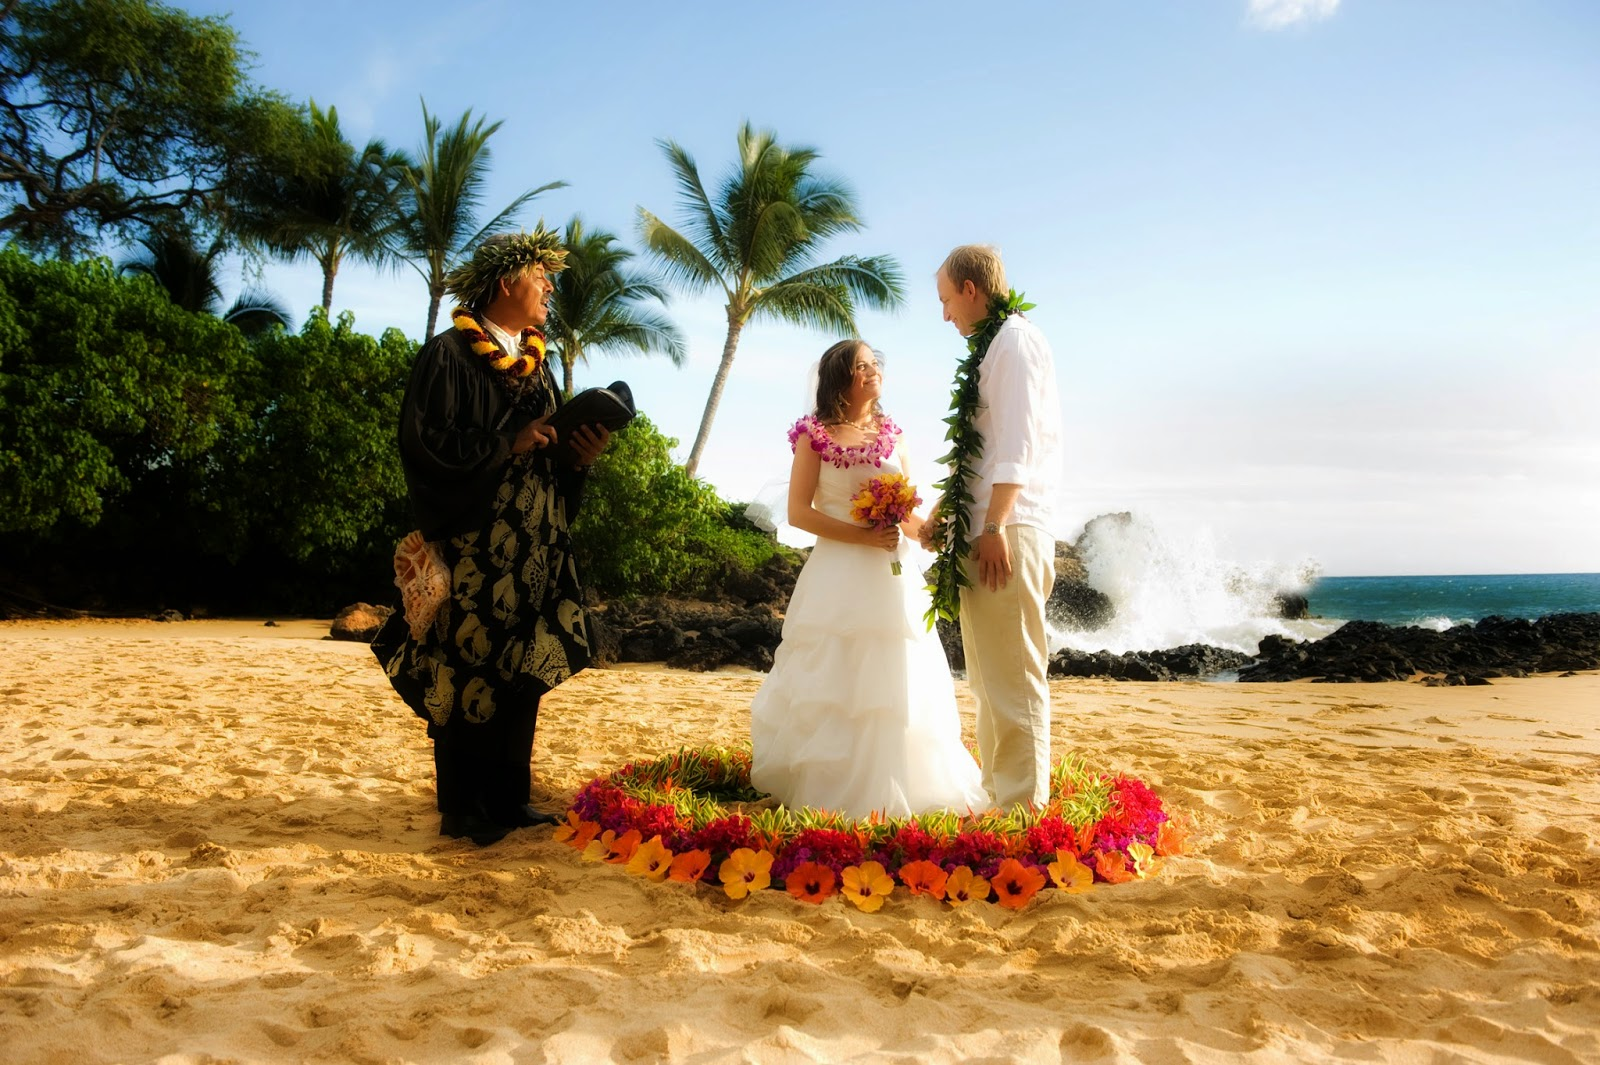 maui wedding photography, maui wedding photographer, maui wedding photographers, makena cove beach wedding